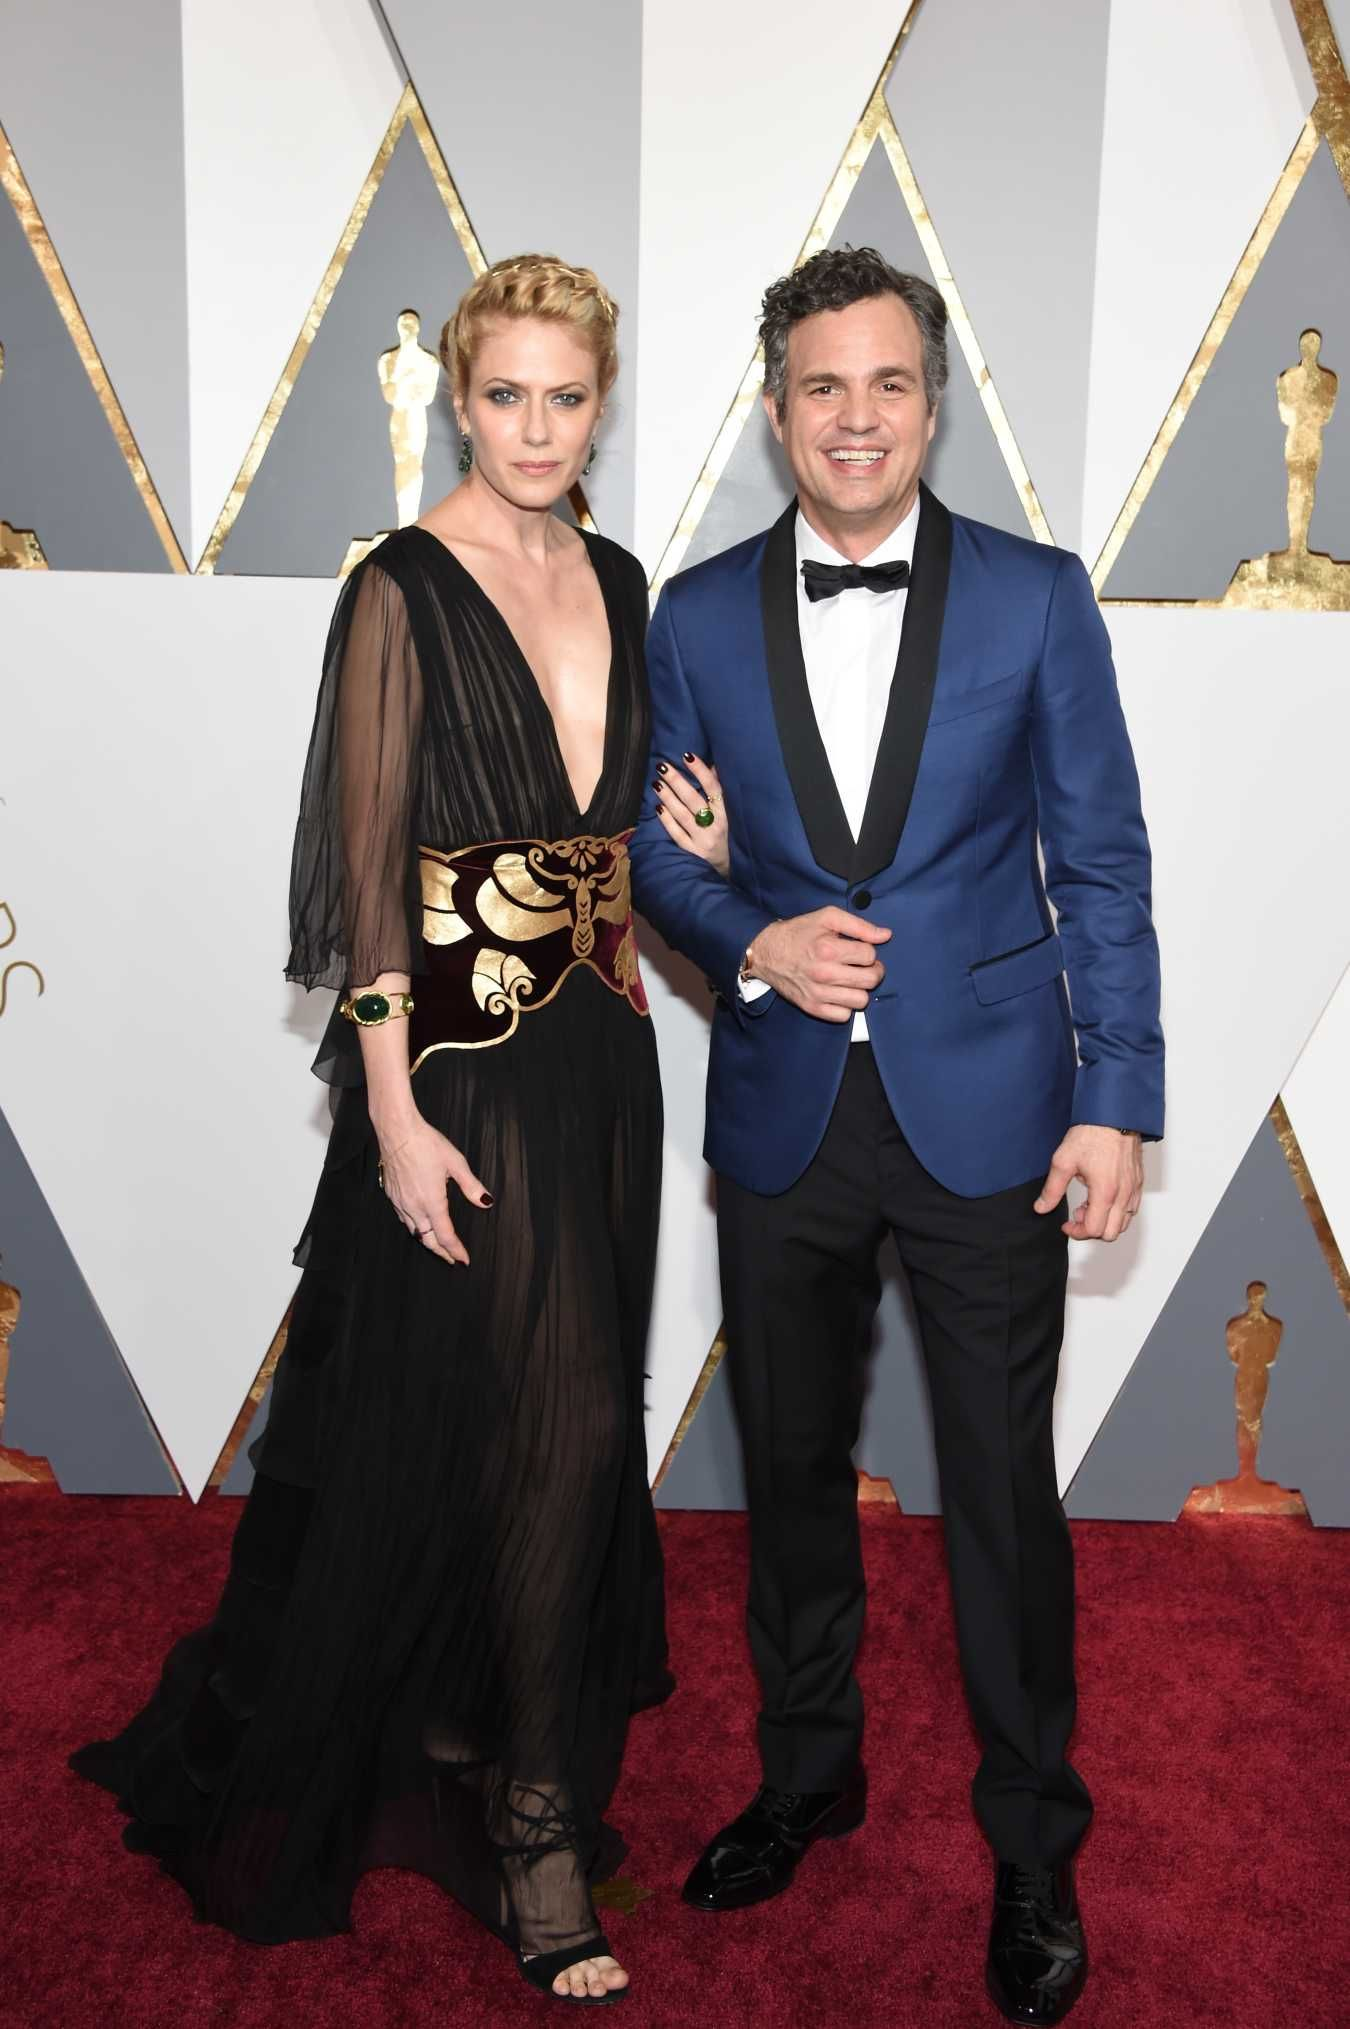 Sunrise Coigney and Mark Ruffalo wears custom Valentino on the Oscars red carpet. Photo: Ethan Miller/Getty Images.